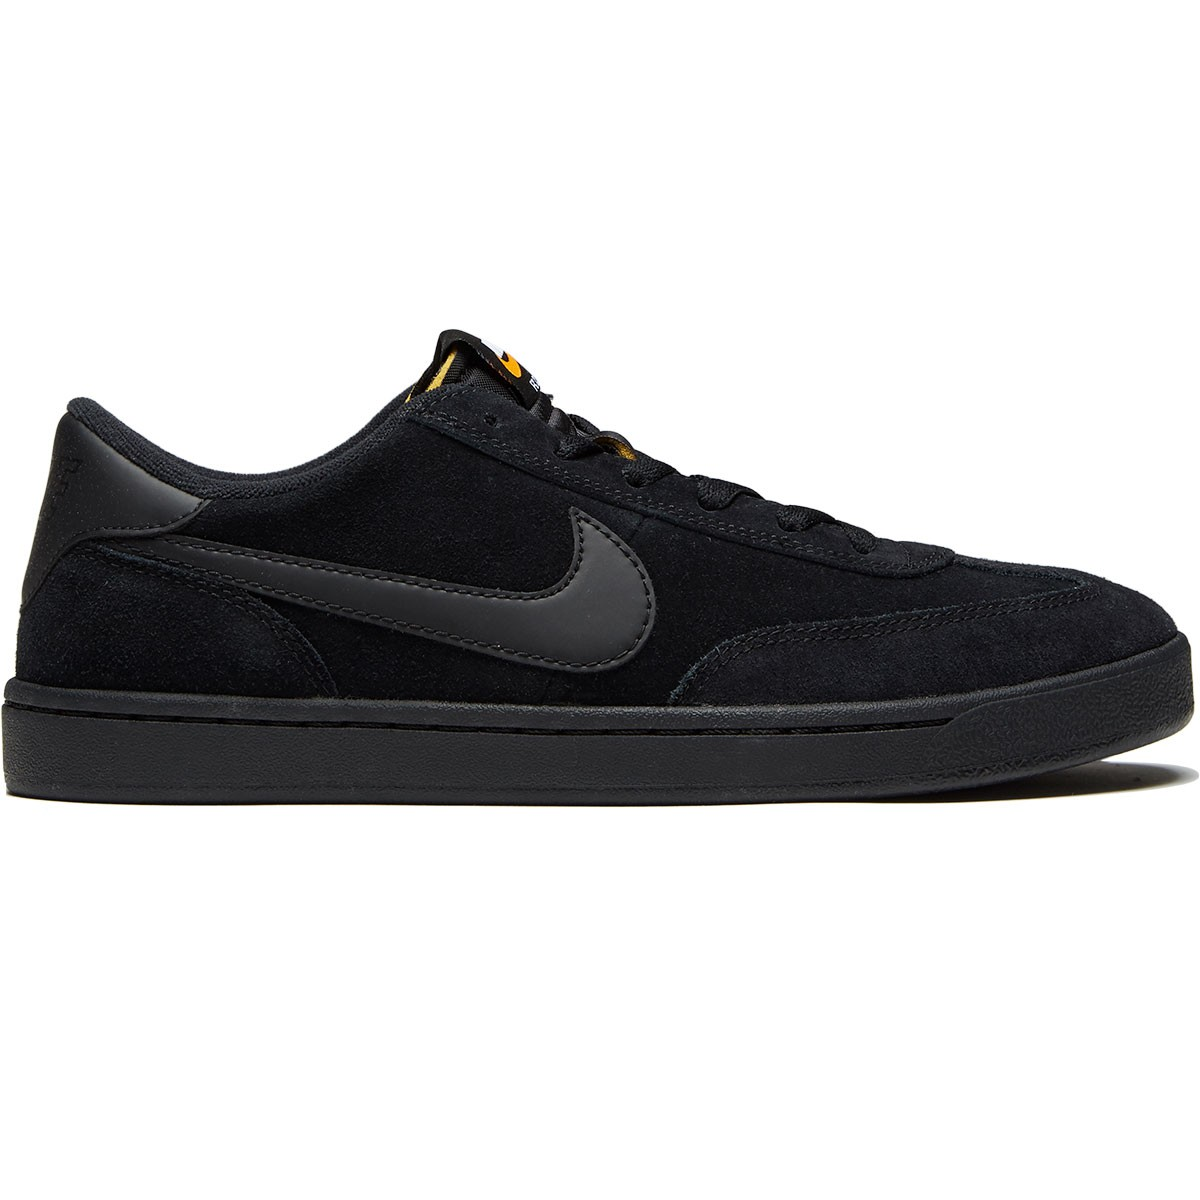 nike sb black gum sole